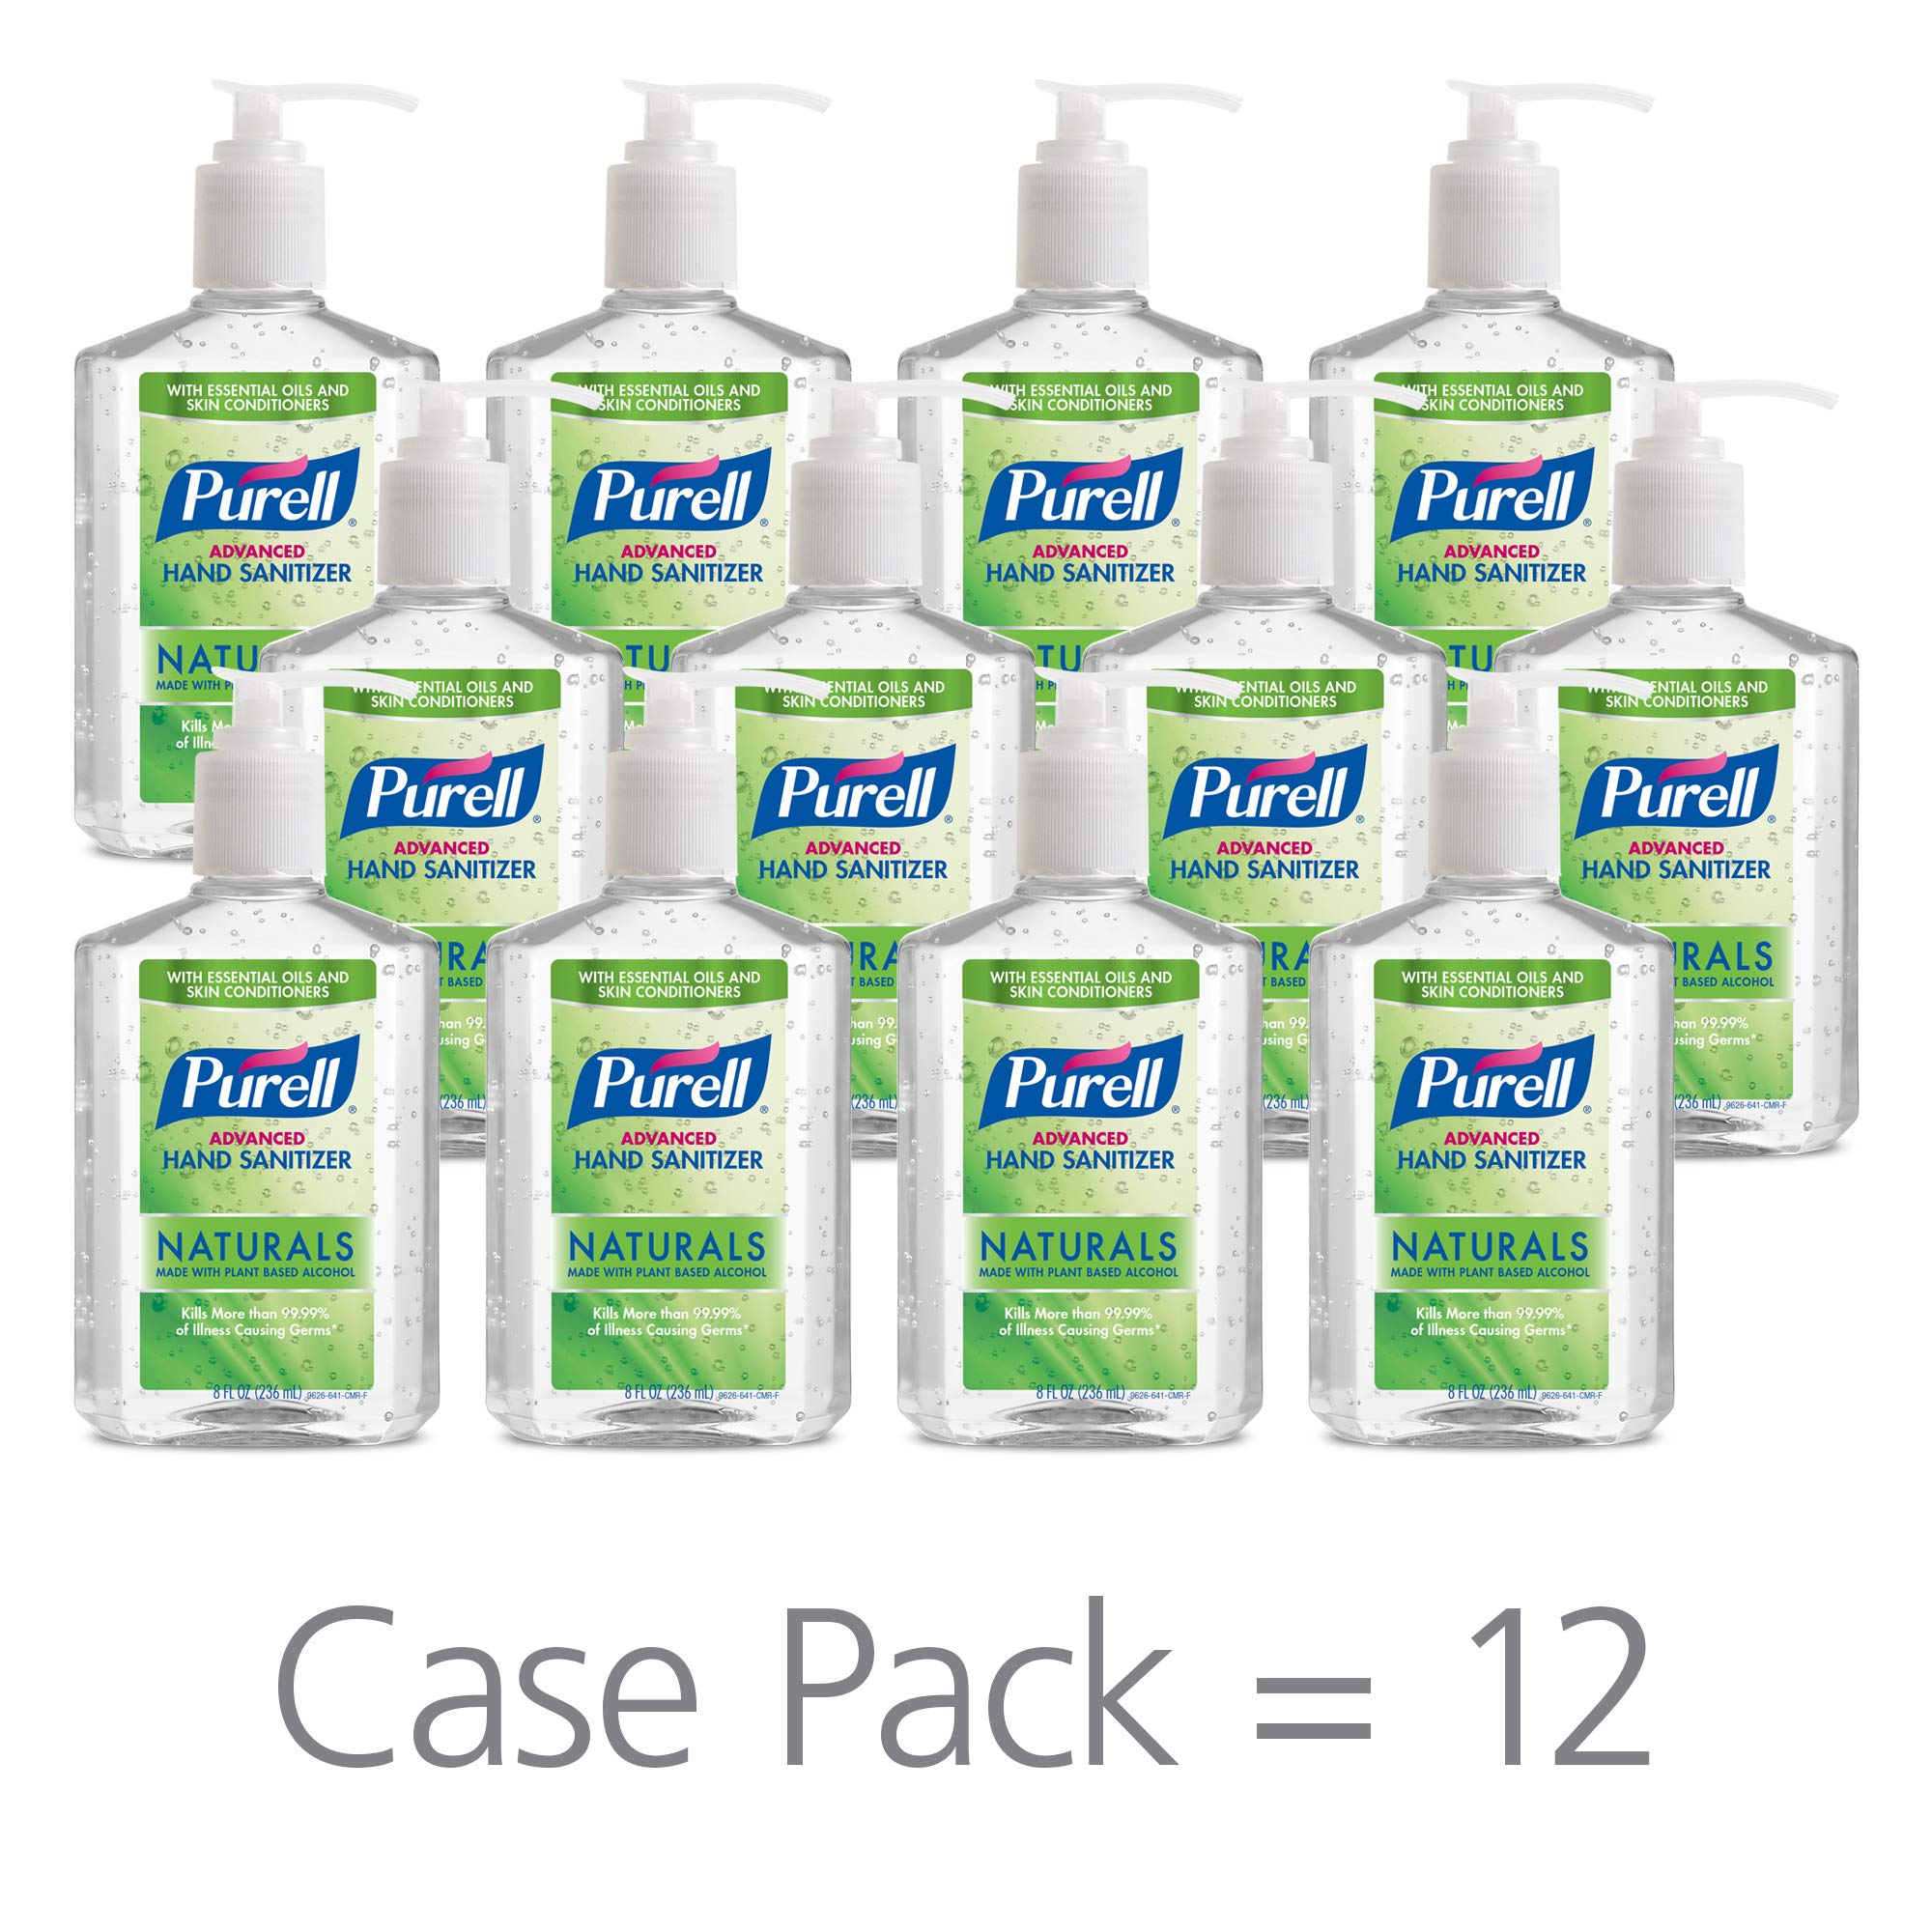 PURELL Advanced Hand Sanitizer Naturals with Plant Based Alcohol, Citrus Scent, 8 fl oz Pump Bottle (Pack of 12) - 9626-12-CMR by Purell